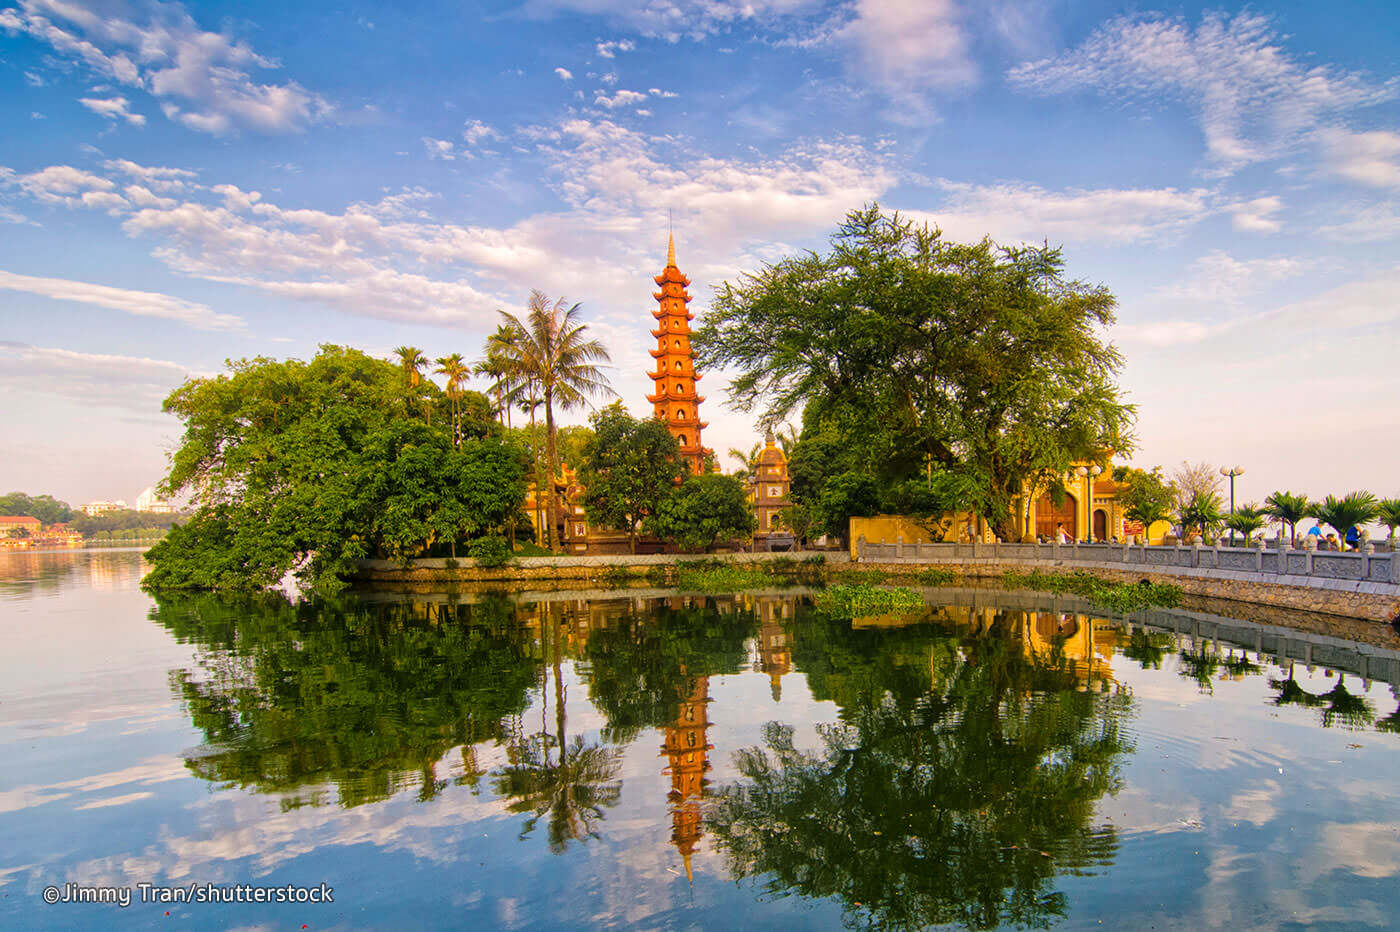 Tran Quoc Temple by West Lake, Hanoi. - Source: Shutterstock